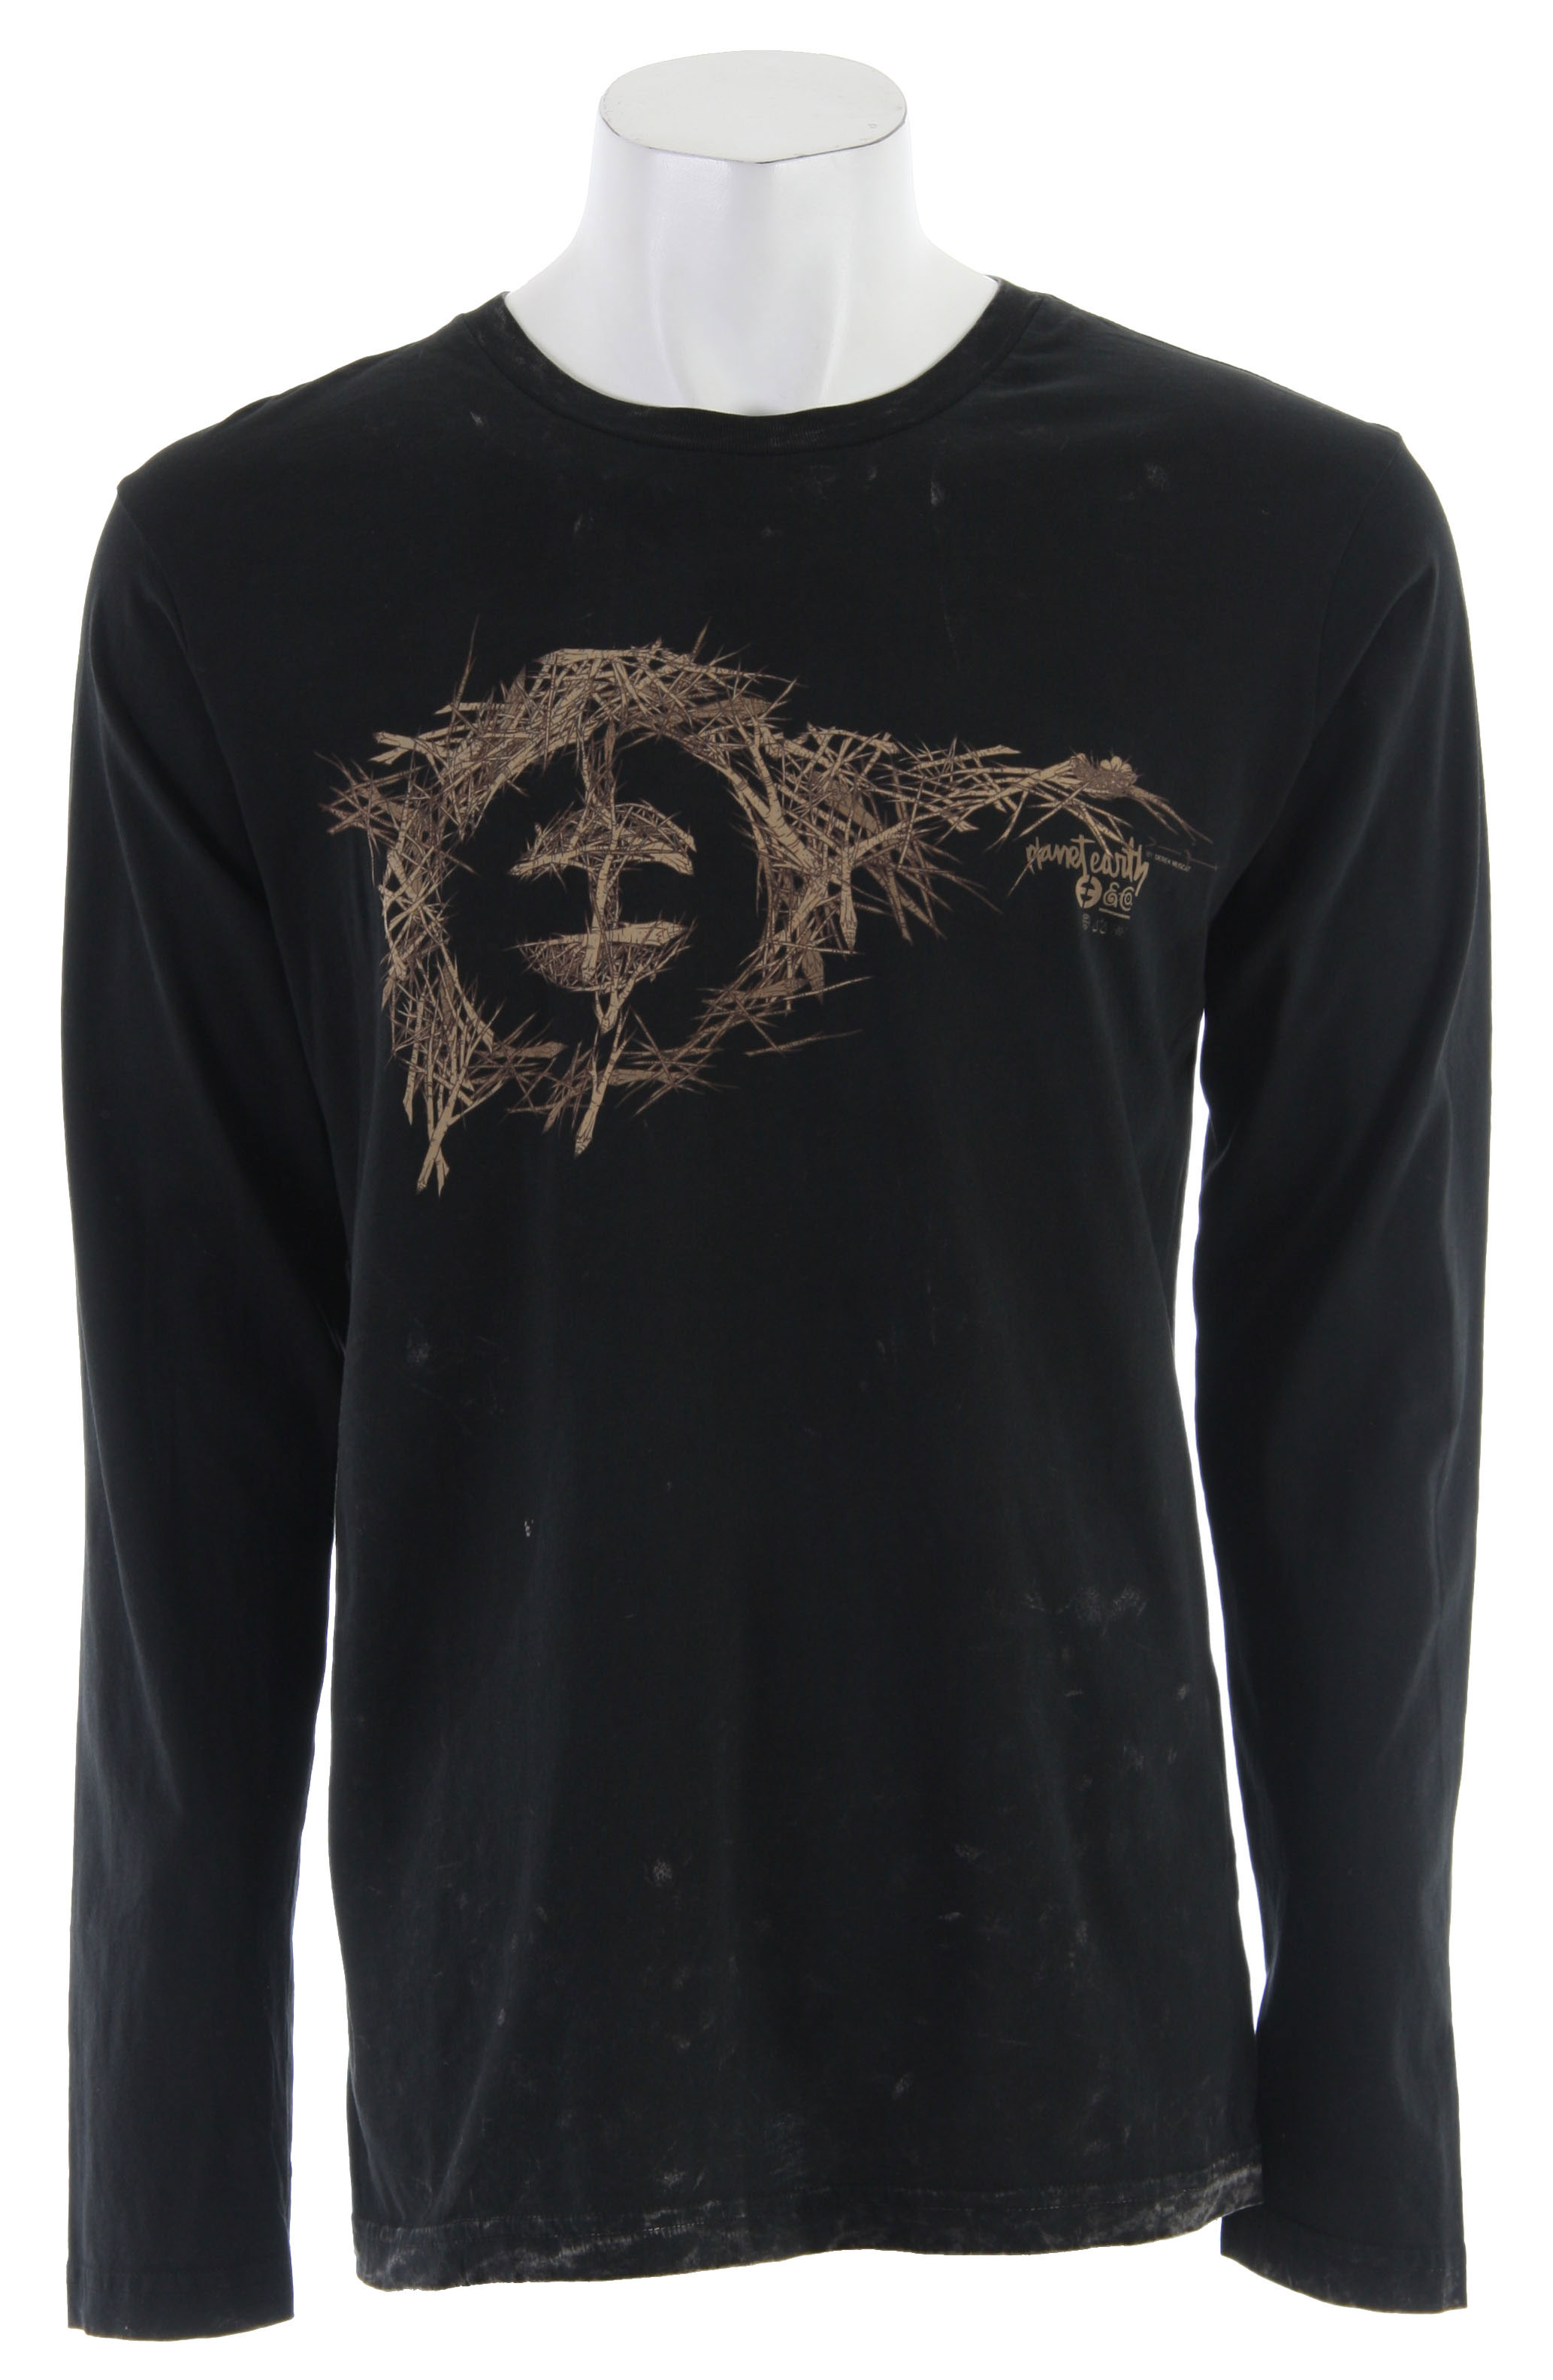 Planet Earth Muscat L/S T-Shirt - $9.95